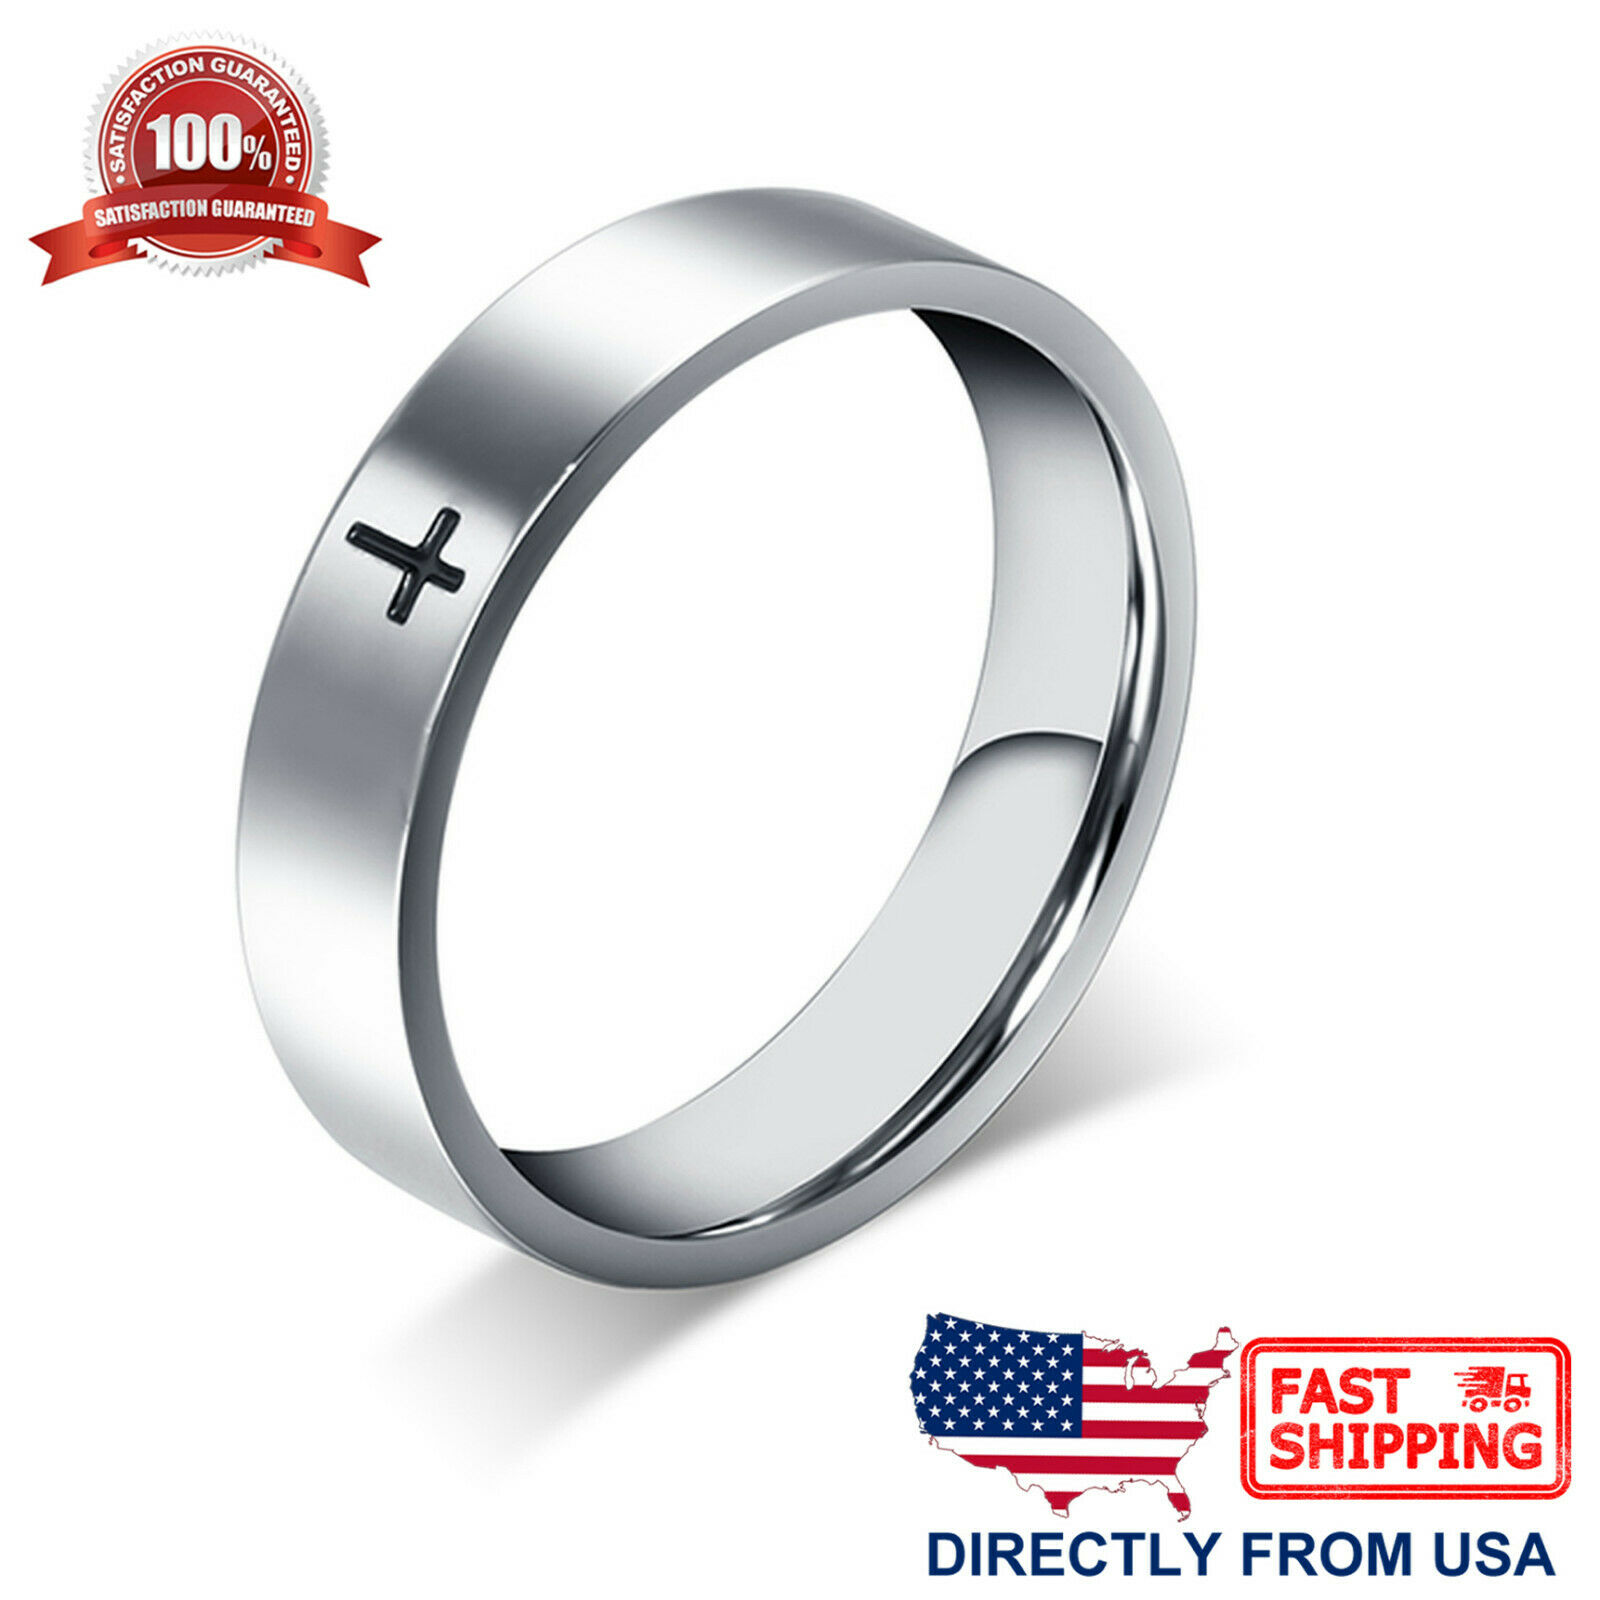 Stainless Steel Cross Ring Polished Comfort Fit Men's & Women's Wedding Band Jewelry & Watches